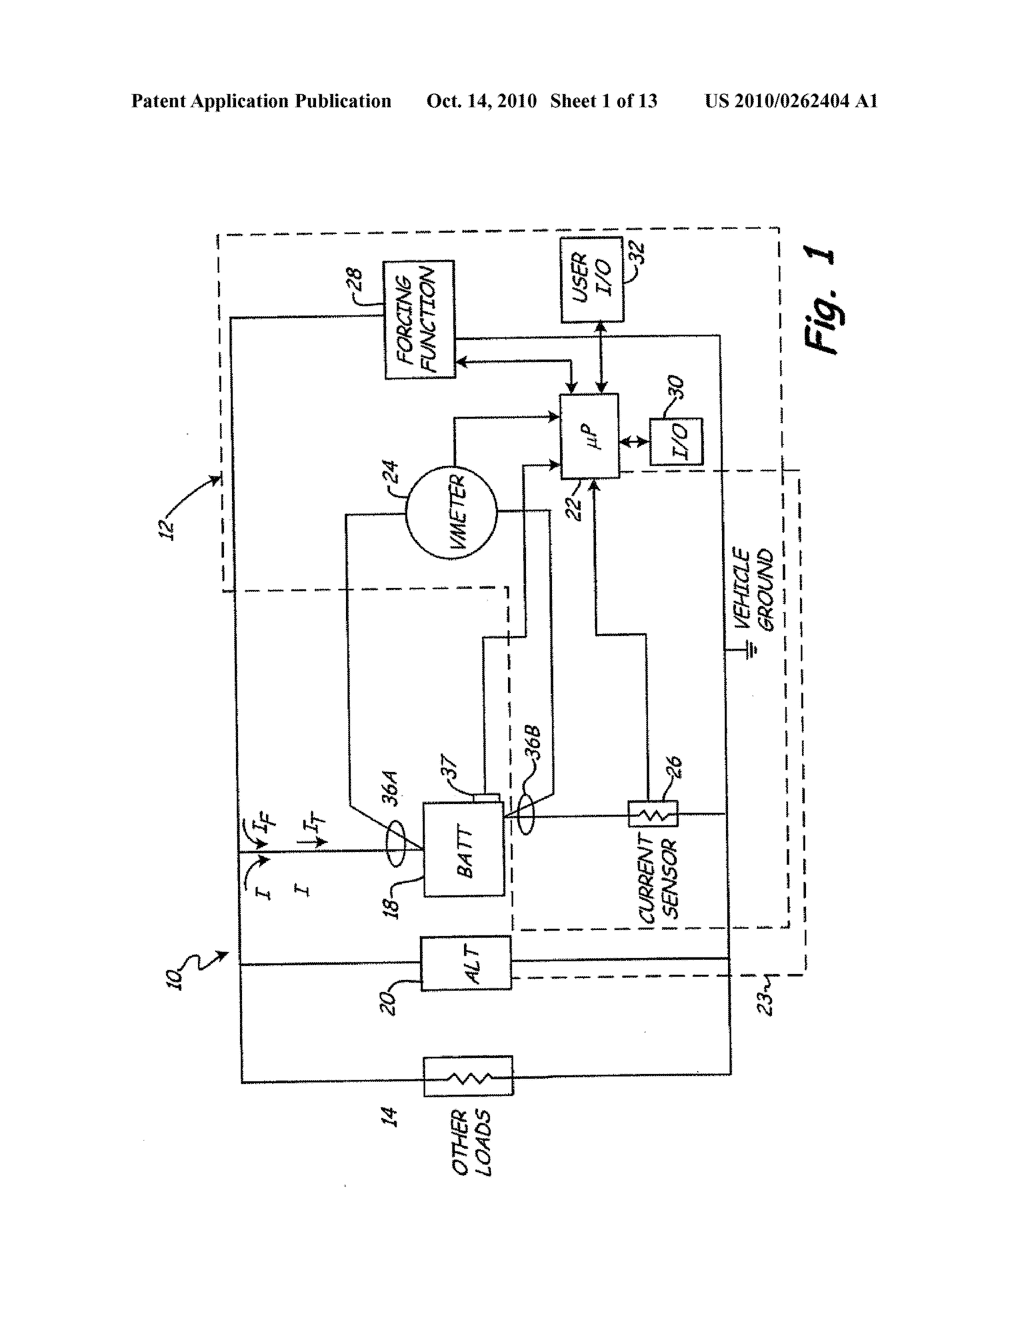 hight resolution of automotive vehicle electrical system diagnostic device diagram schematic and image 02